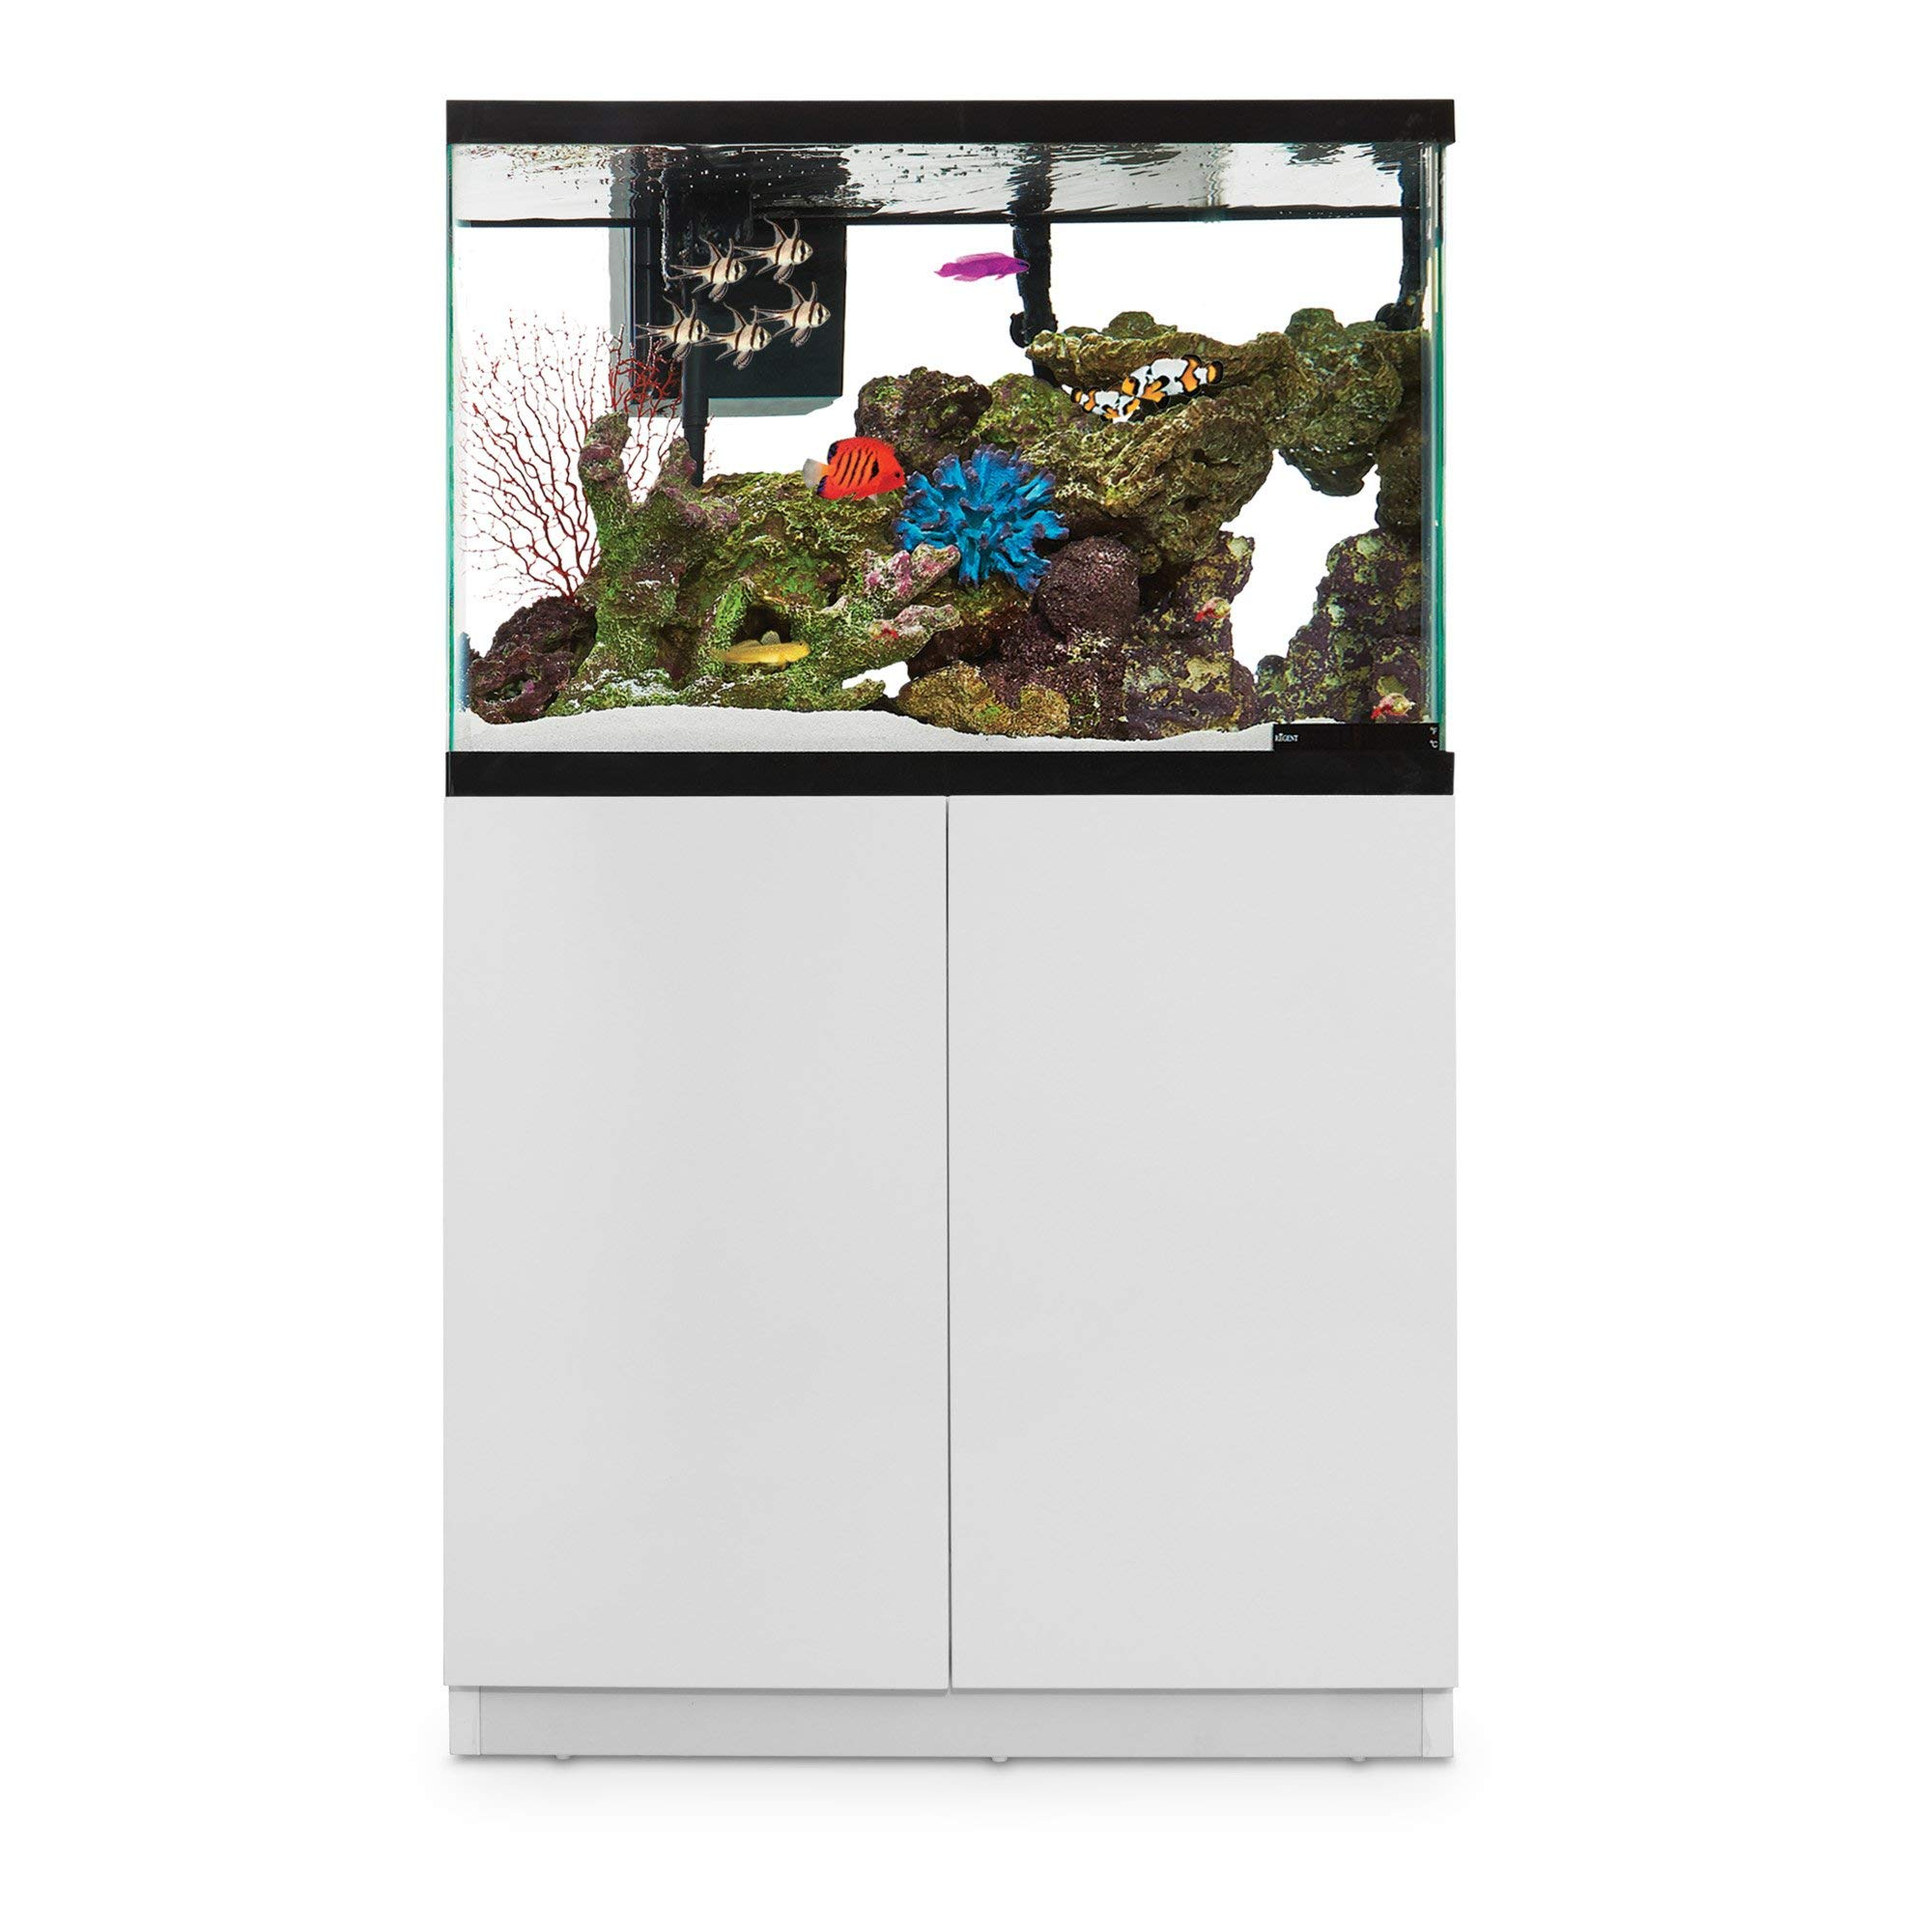 Imagitarium White Gloss Fish Tank Stand, Up to 40 Gal, 18.25 in by Imagitarium